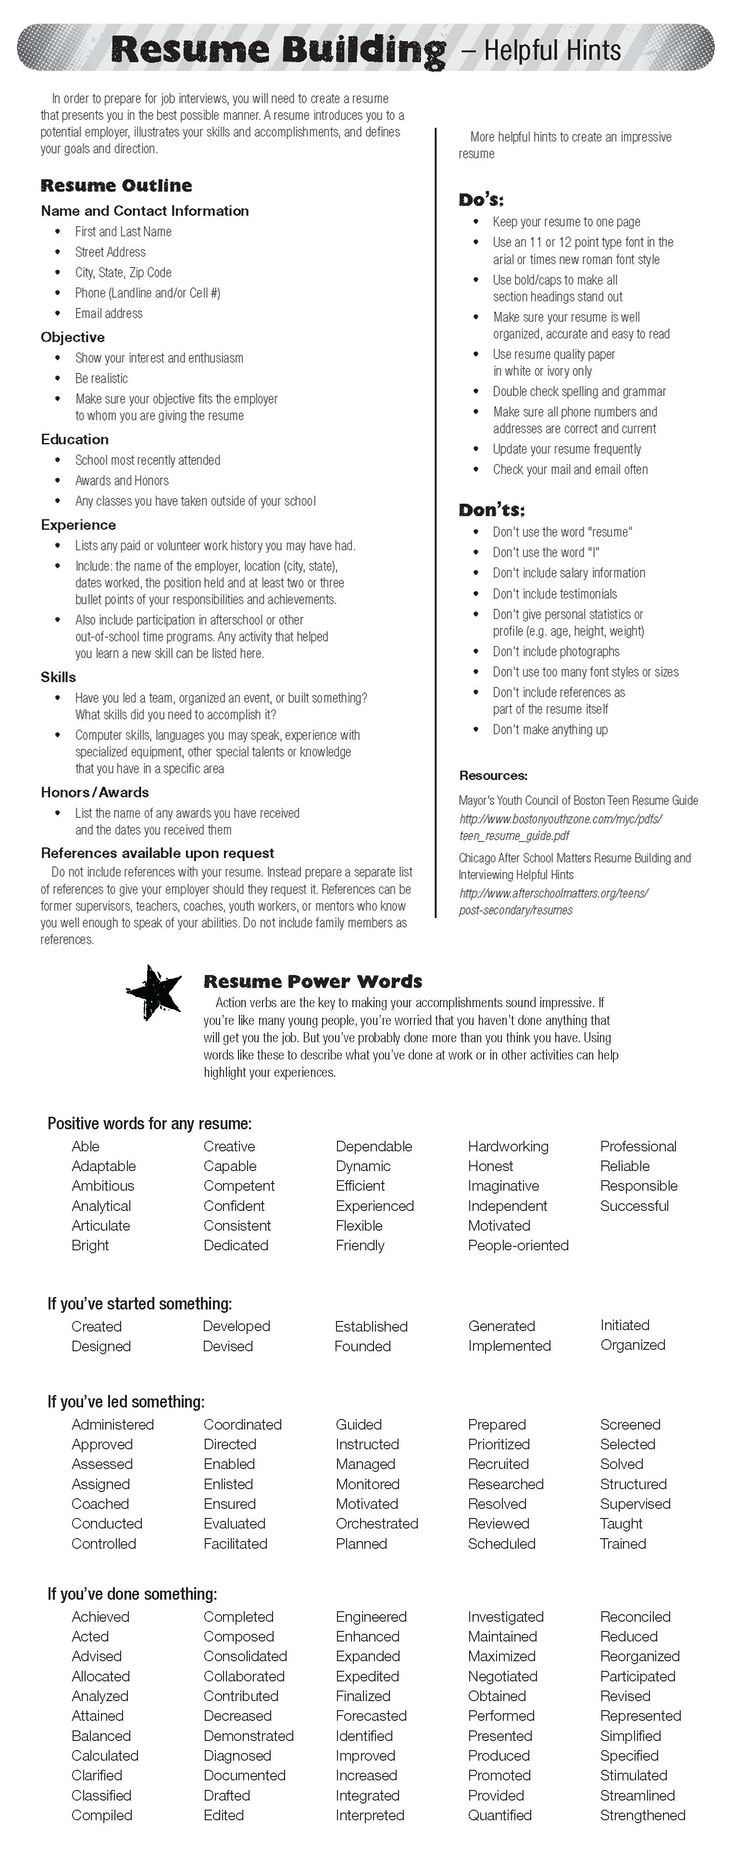 Picnictoimpeachus  Marvellous  Ideas About Resume On Pinterest  Cv Format Resume Cv And  With Foxy  Ideas About Resume On Pinterest  Cv Format Resume Cv And Resume Templates With Beautiful Management Consulting Resume Also Resume Skills And Abilities Examples In Addition Logistics Manager Resume And Buzzwords For Resumes As Well As Resume Template For Google Docs Additionally Study Abroad Resume From Pinterestcom With Picnictoimpeachus  Foxy  Ideas About Resume On Pinterest  Cv Format Resume Cv And  With Beautiful  Ideas About Resume On Pinterest  Cv Format Resume Cv And Resume Templates And Marvellous Management Consulting Resume Also Resume Skills And Abilities Examples In Addition Logistics Manager Resume From Pinterestcom